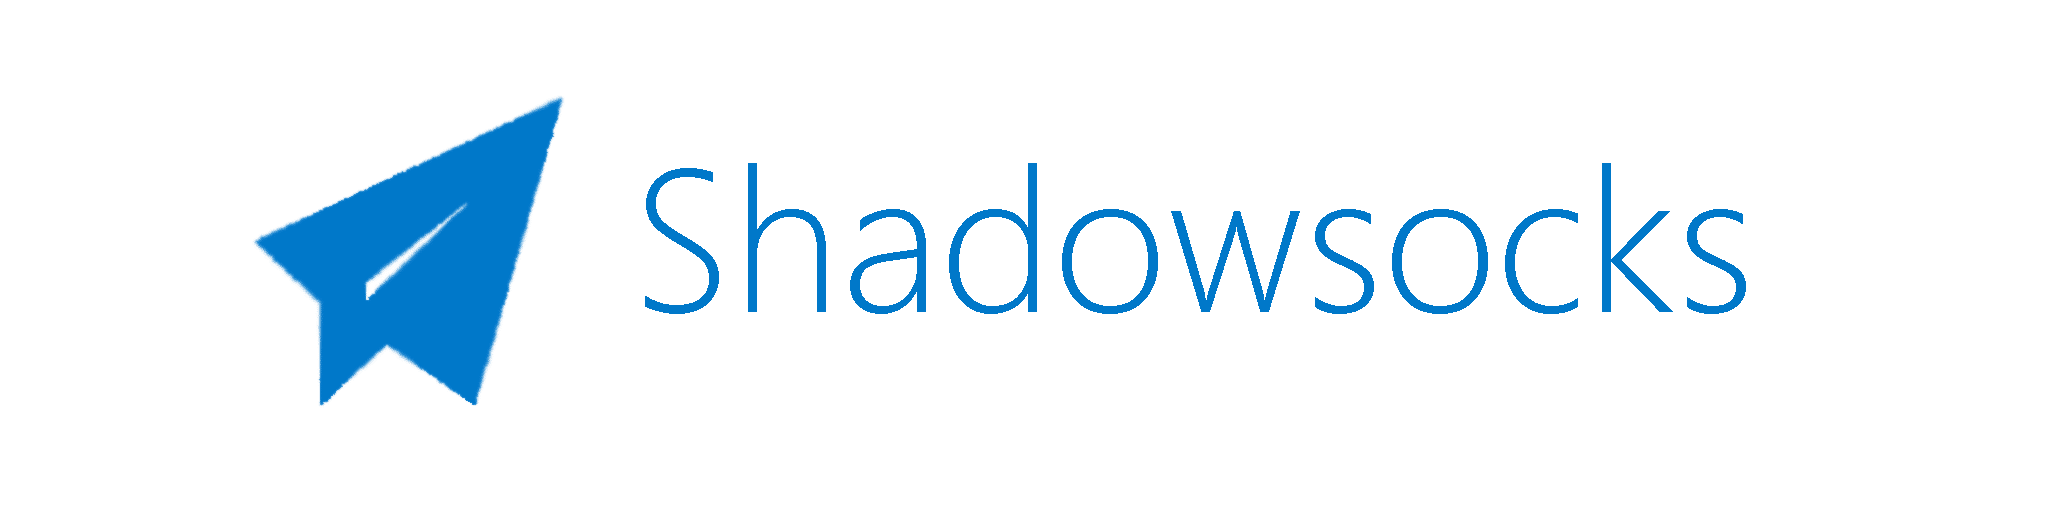 Установка Shadowsocks сервер на Debian 8.10